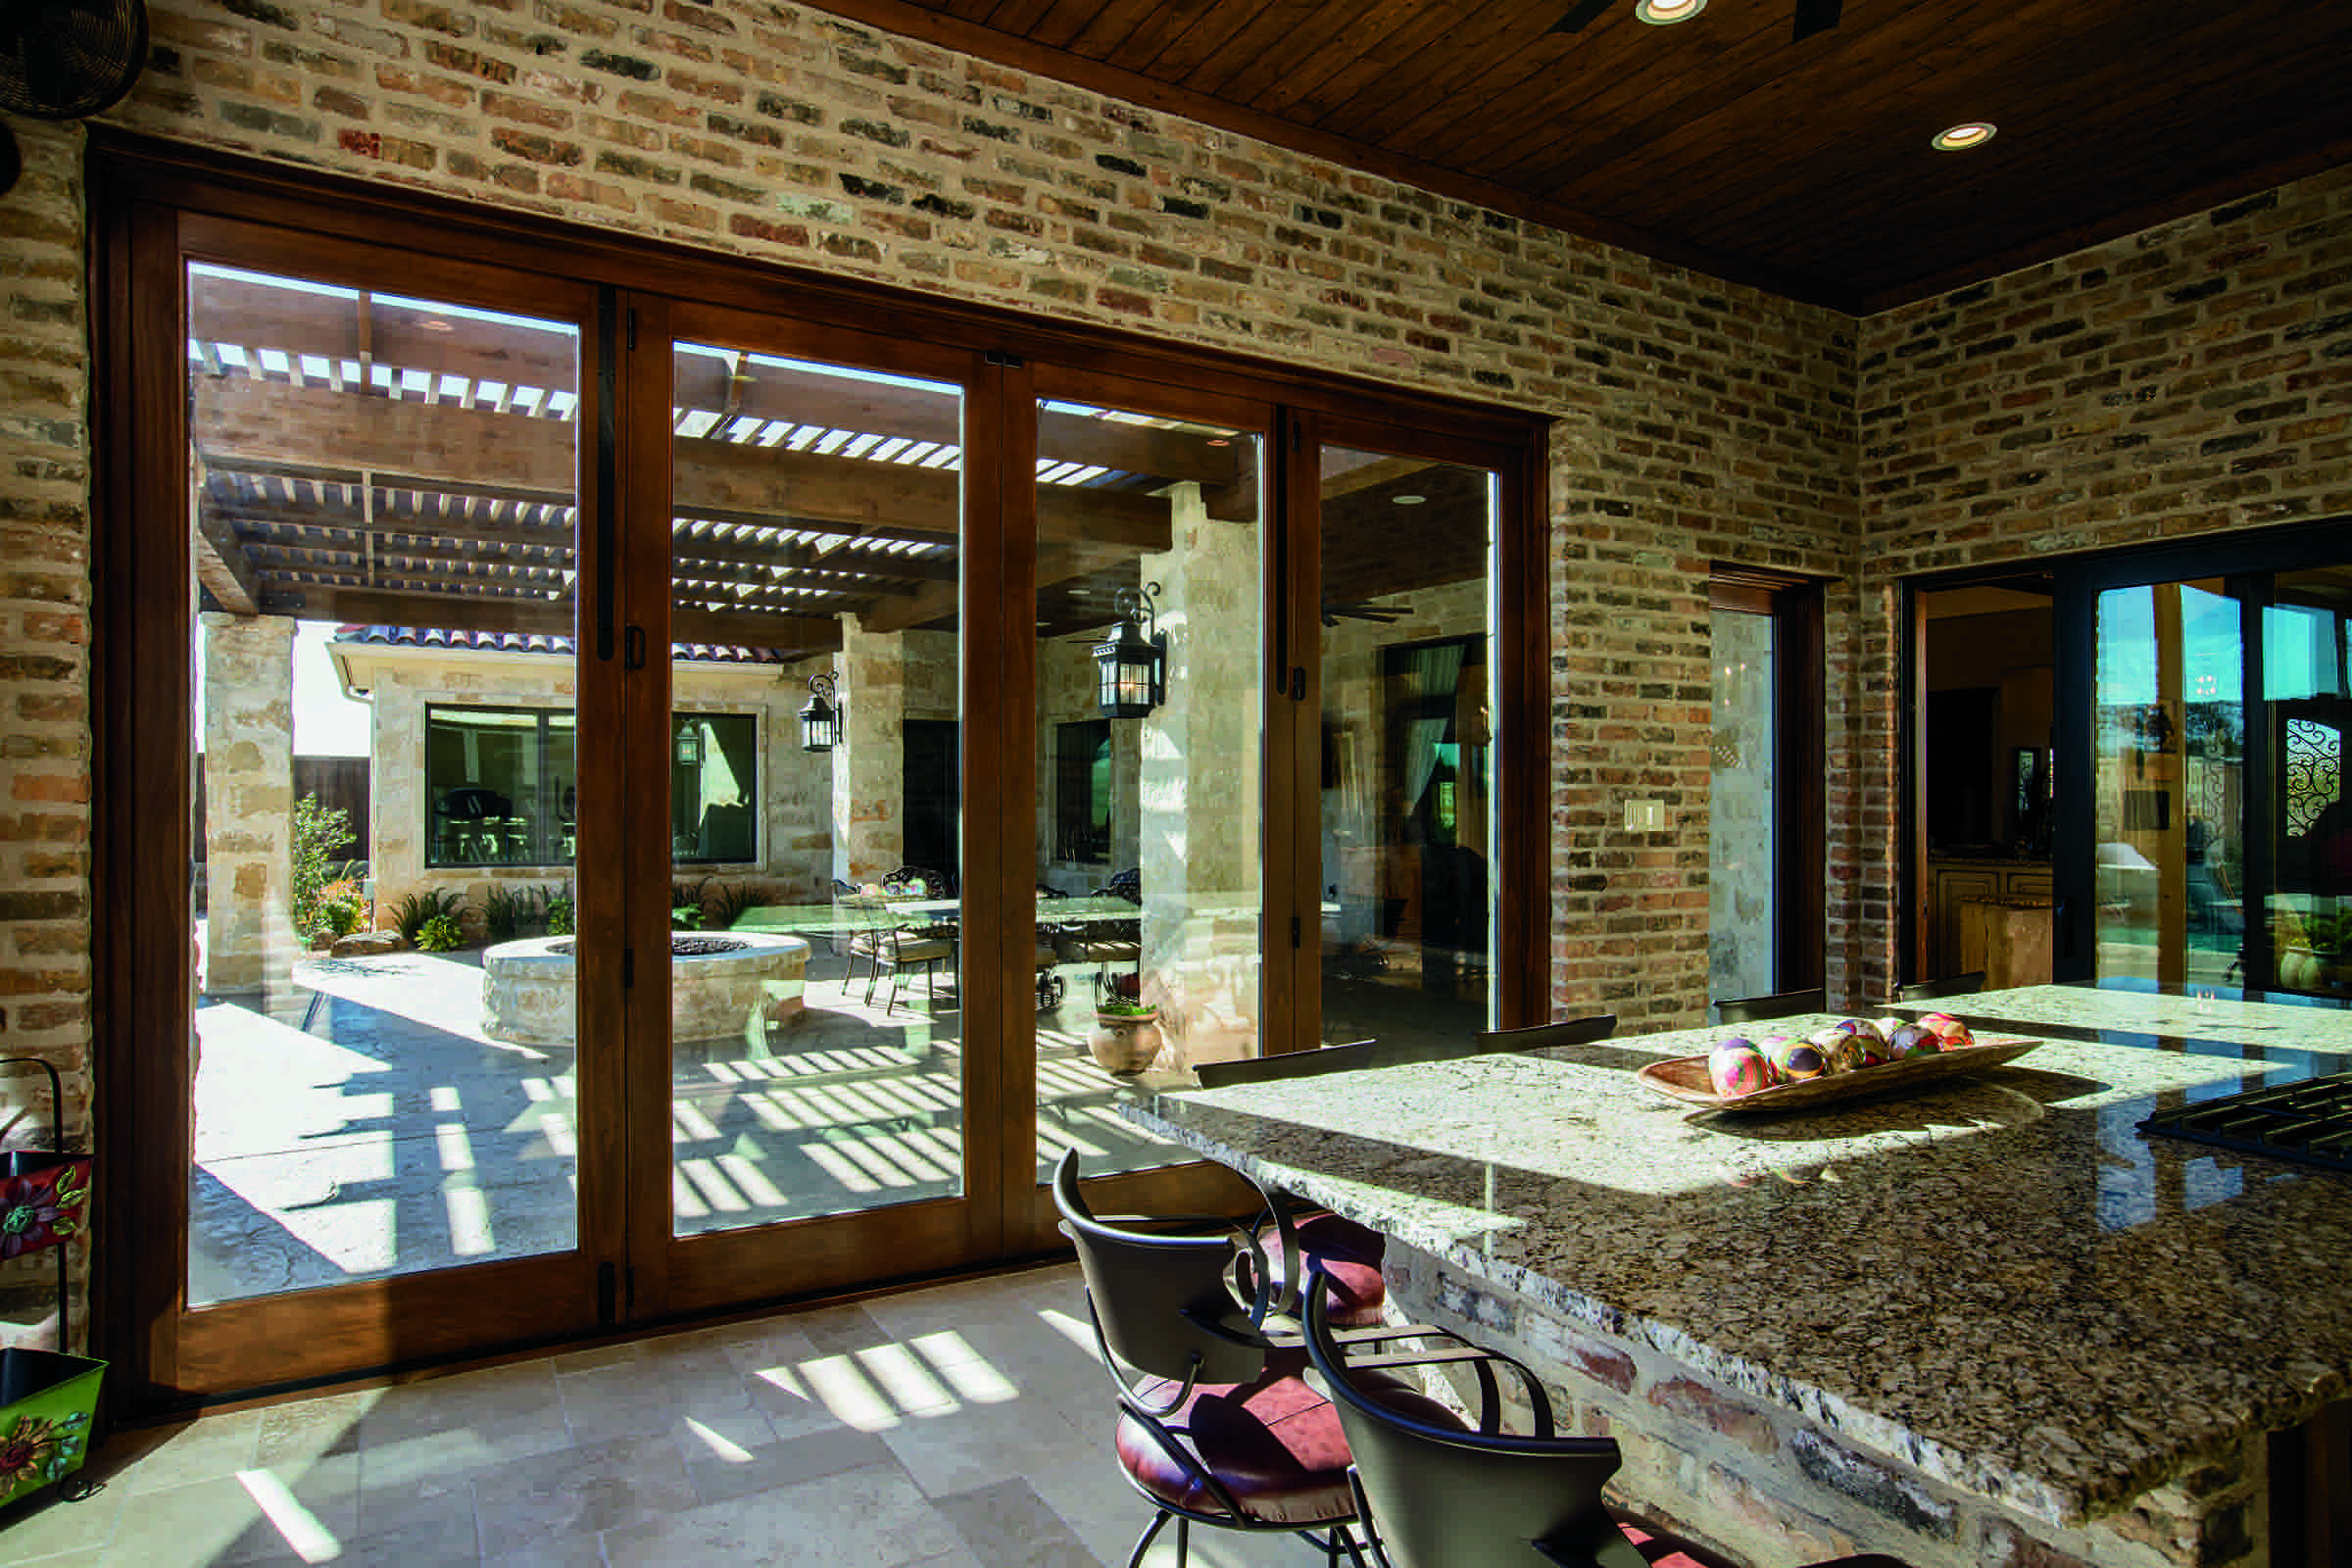 Bring outdoor living inside with Pella Architect Series bifold